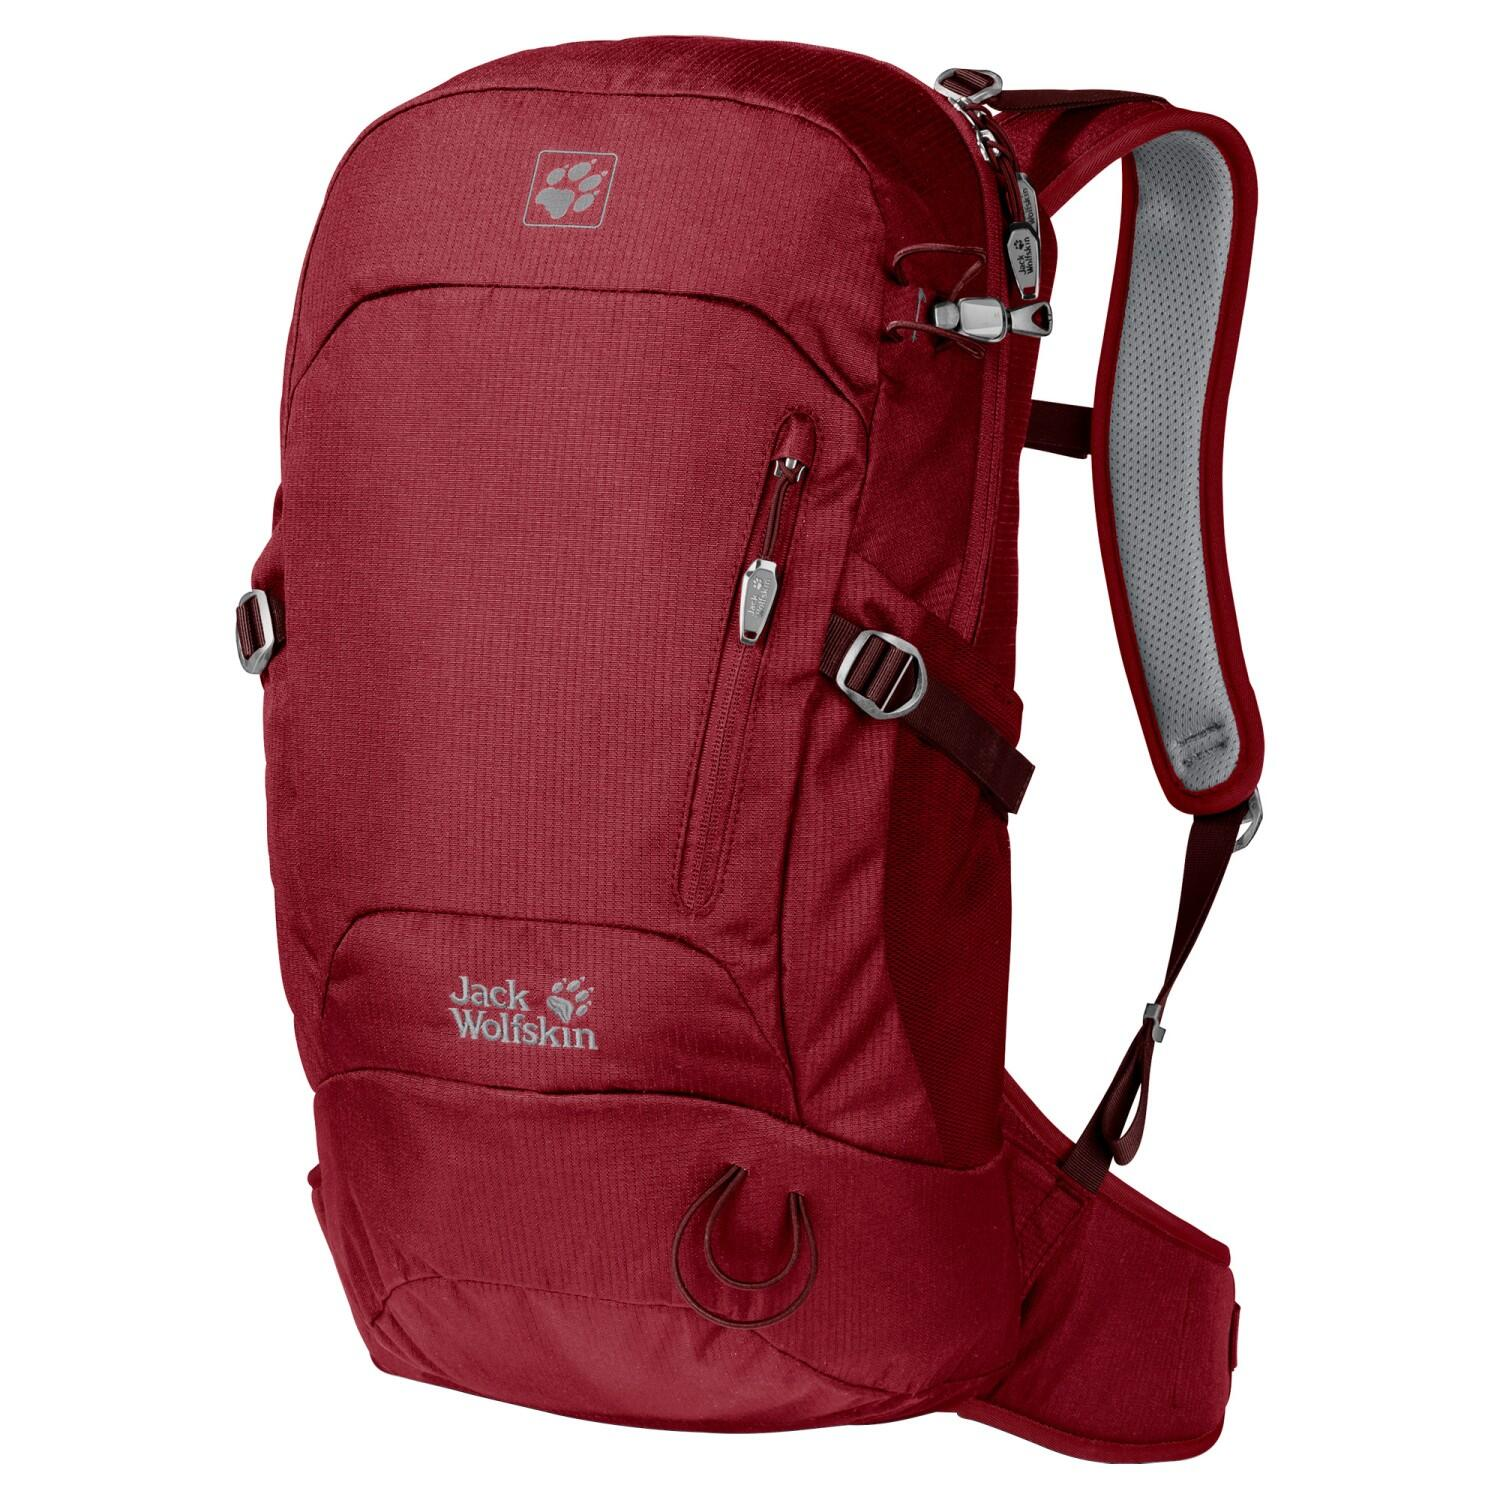 jack-wolfskin-helix-20-pack-rucksack-farbe-2049-red-maroon-